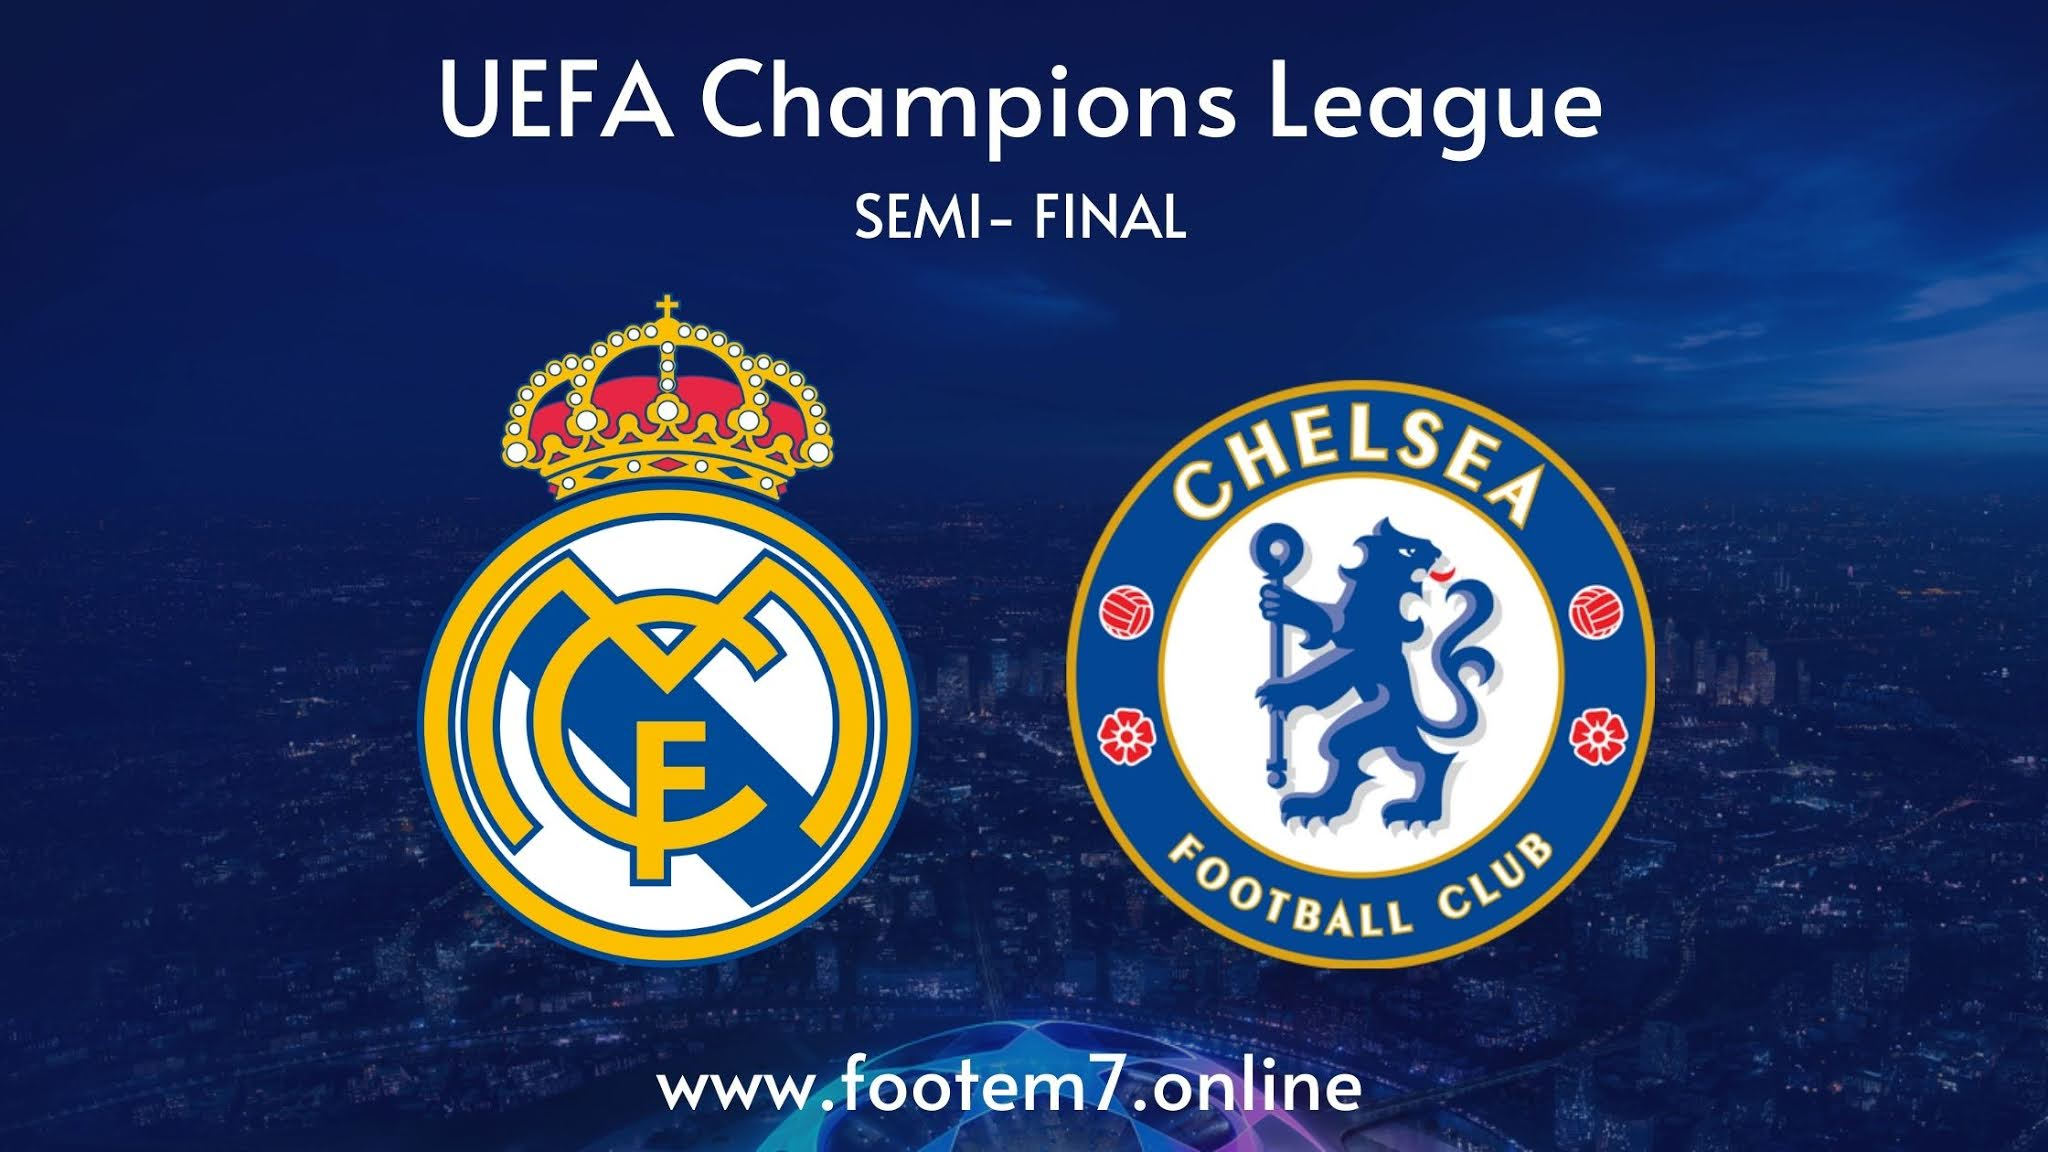 Chelsea vs Real Madrid in the 2nd leg